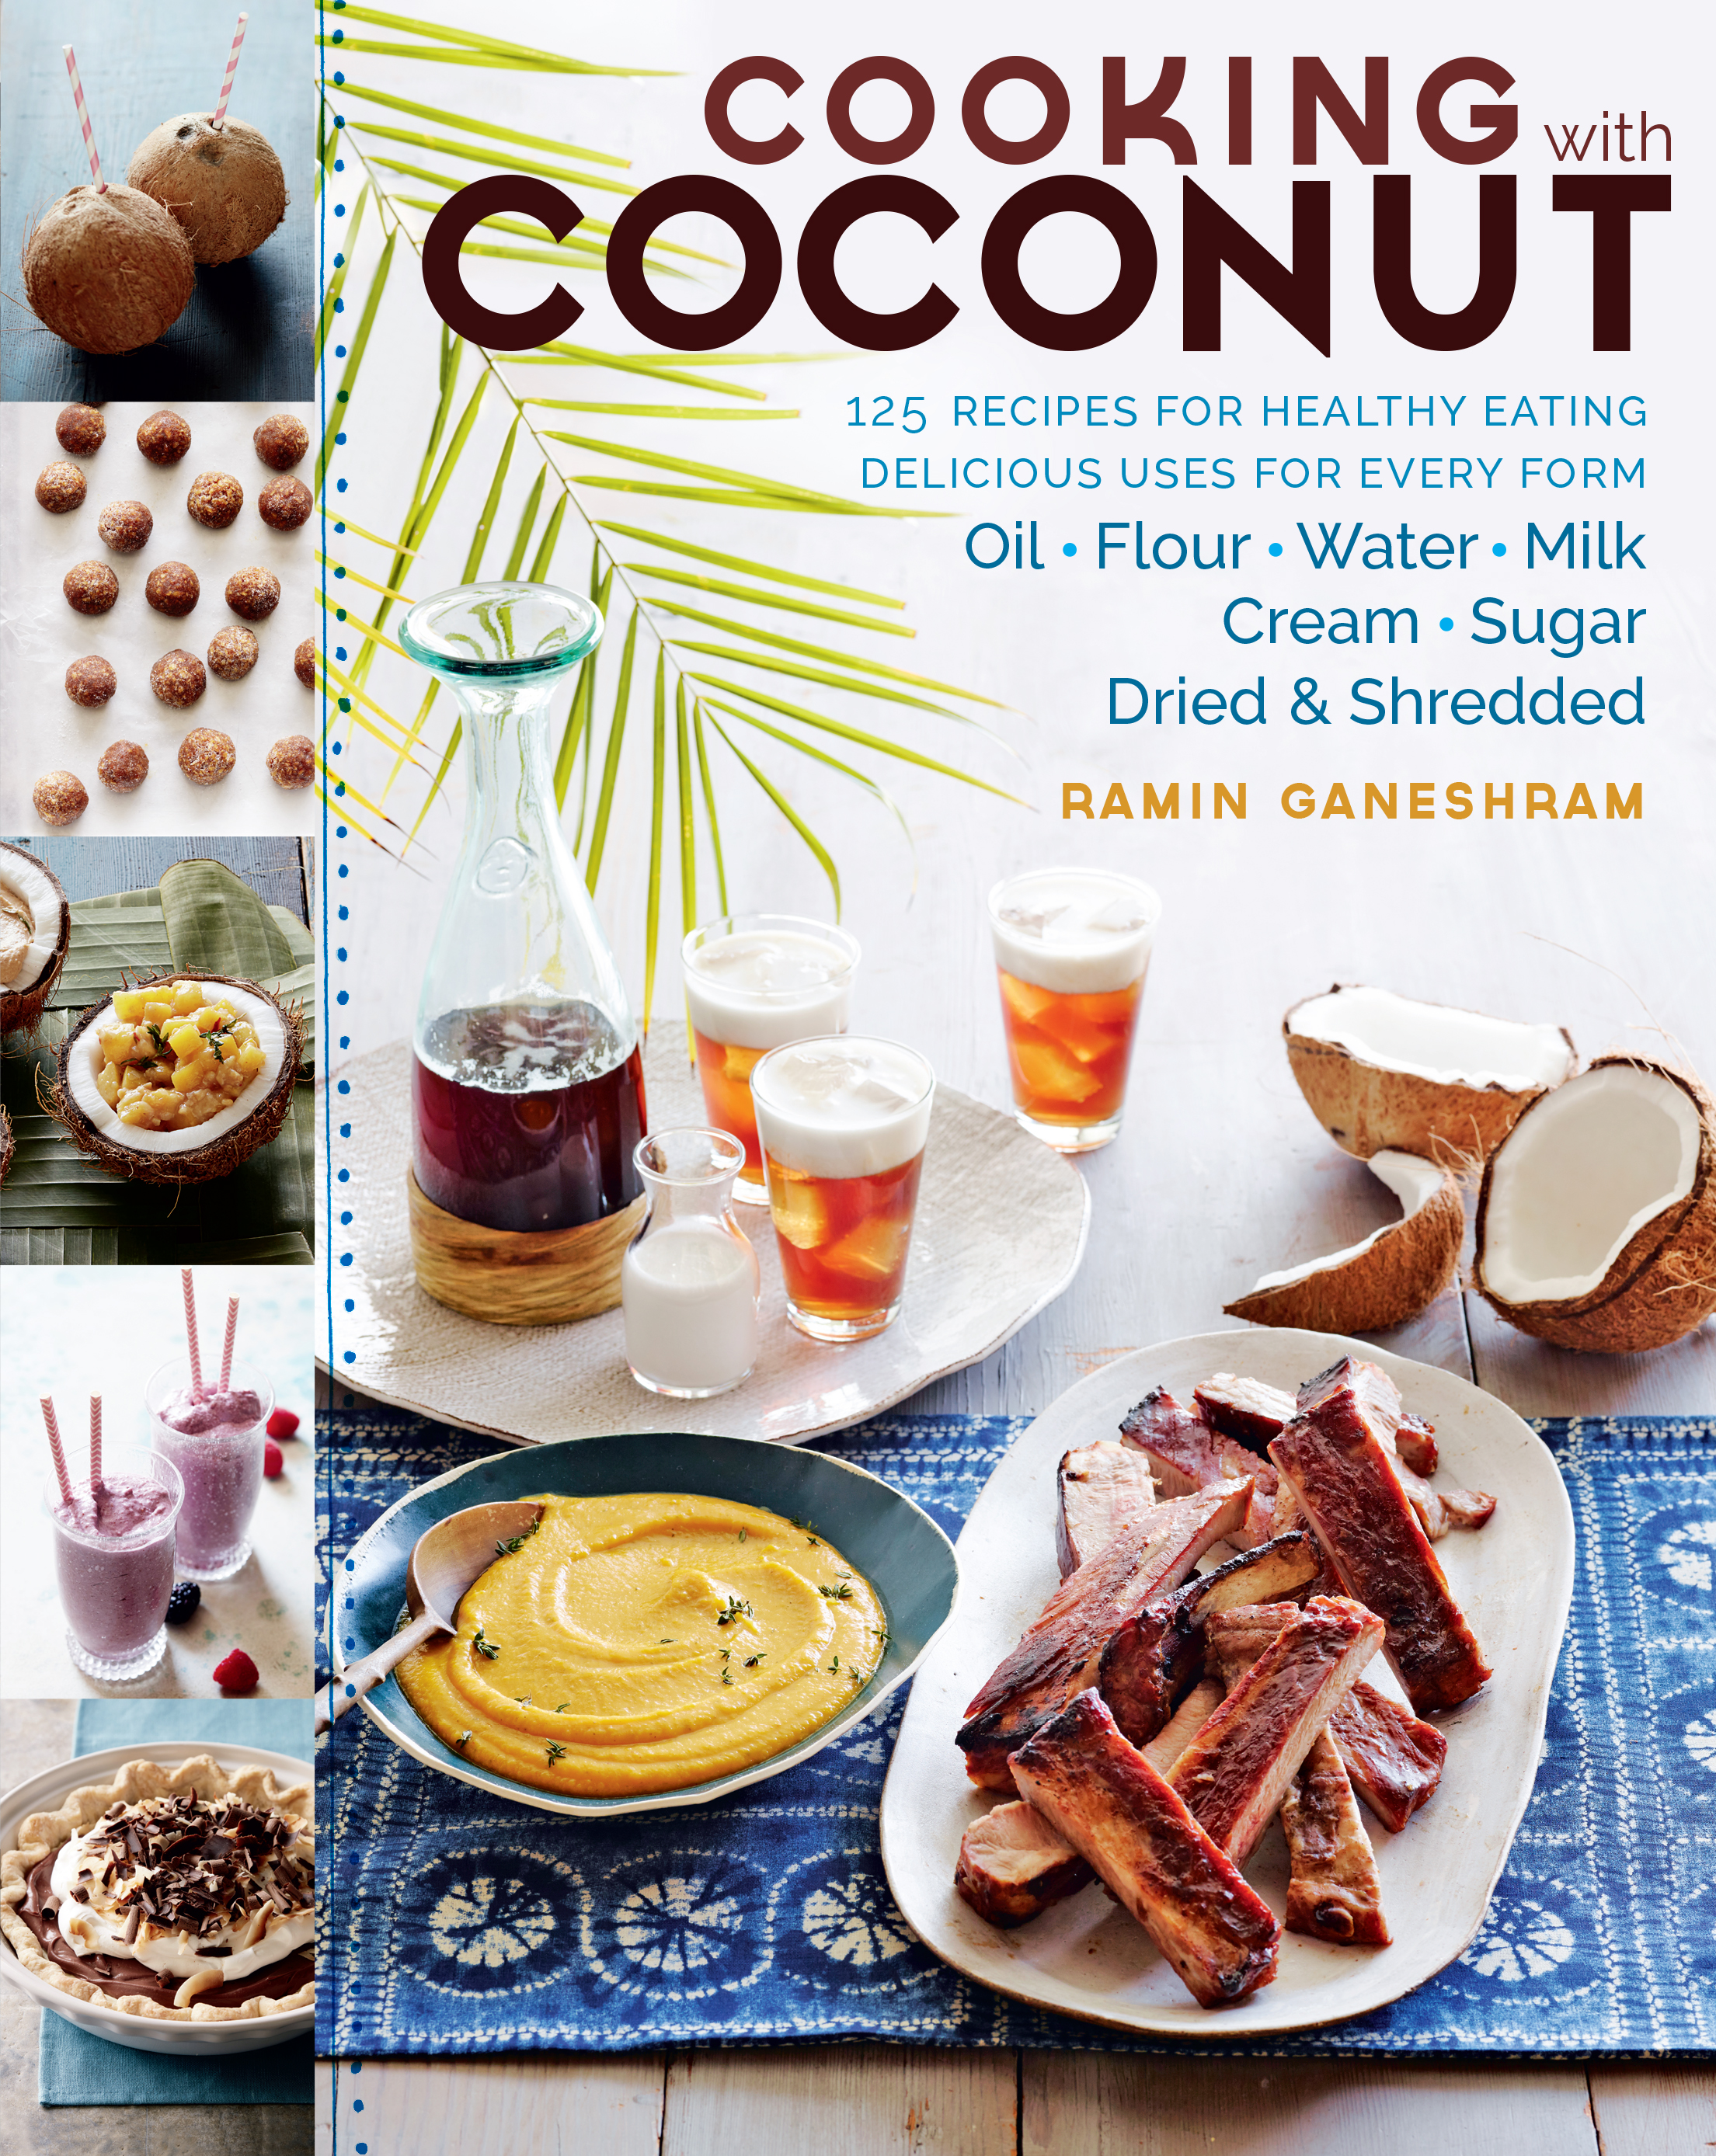 Cooking with Coconut 125 Recipes for Healthy Eating; Delicious Uses for Every Form: Oil, Flour, Water, Milk, Cream, Sugar, Dried & Shredded - Ramin Ganeshram